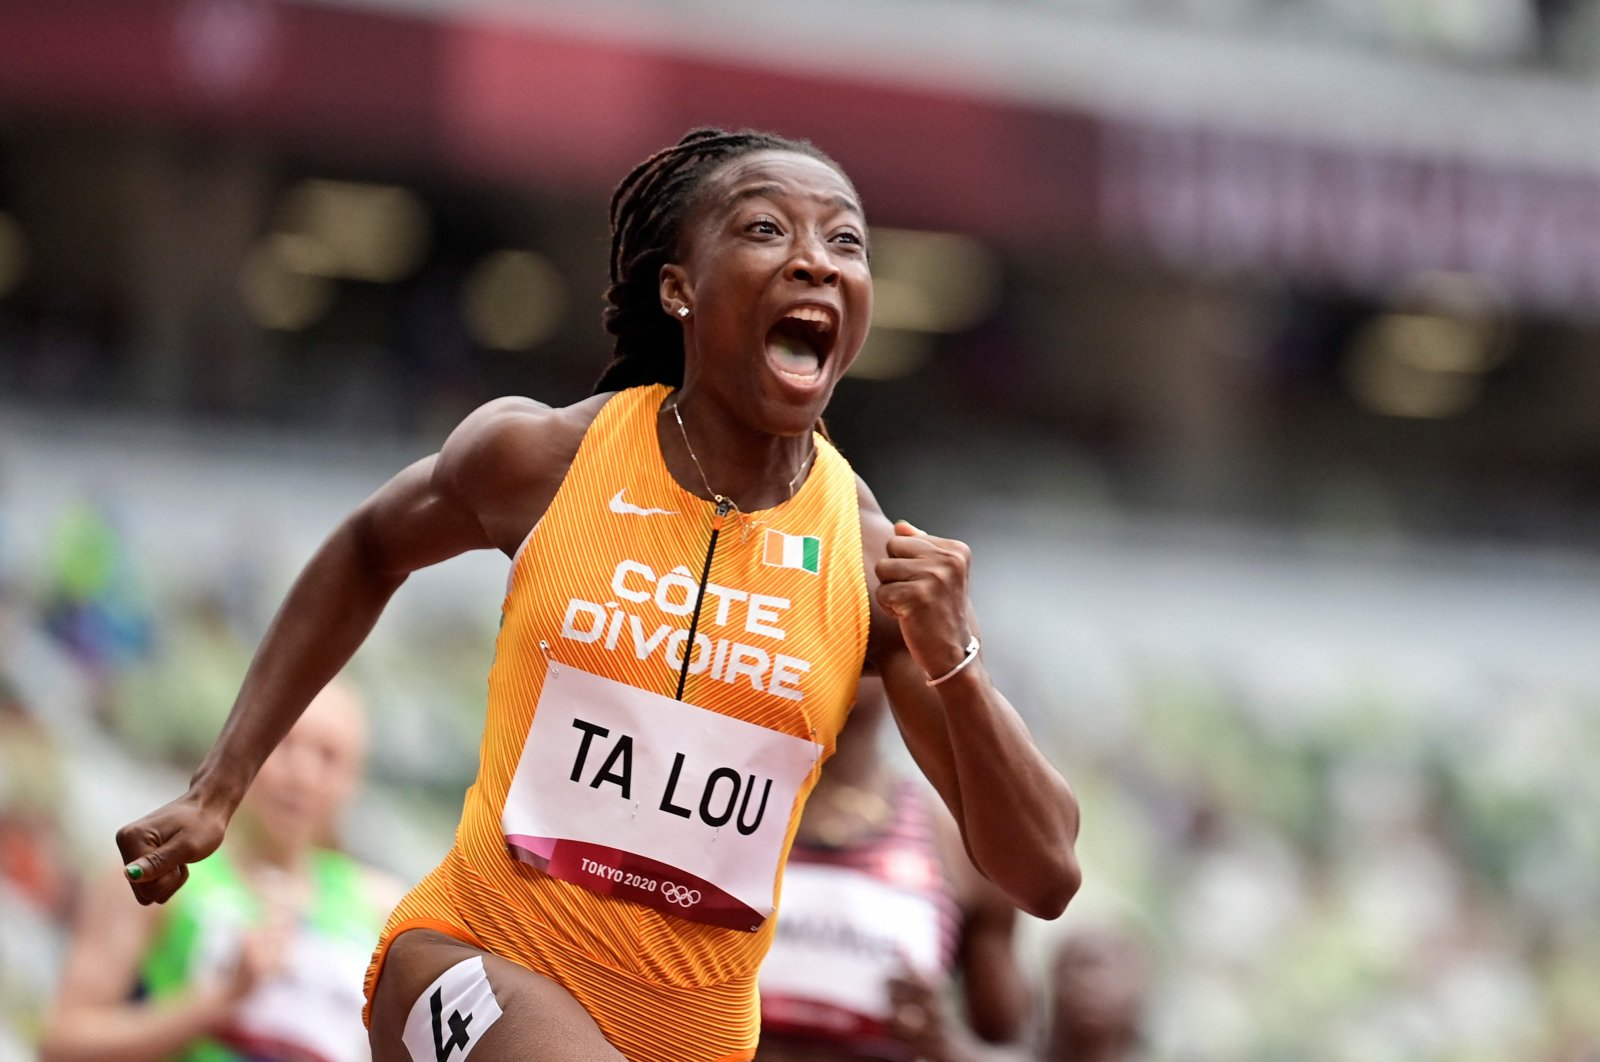 Marie-Josee Ta Lou, of the Ivory Coast, wins a heat in the women's 100-meter run at the 2020 Summer Olympics, in Tokyo, Japan, July 30, 2021. (AFP Photo)